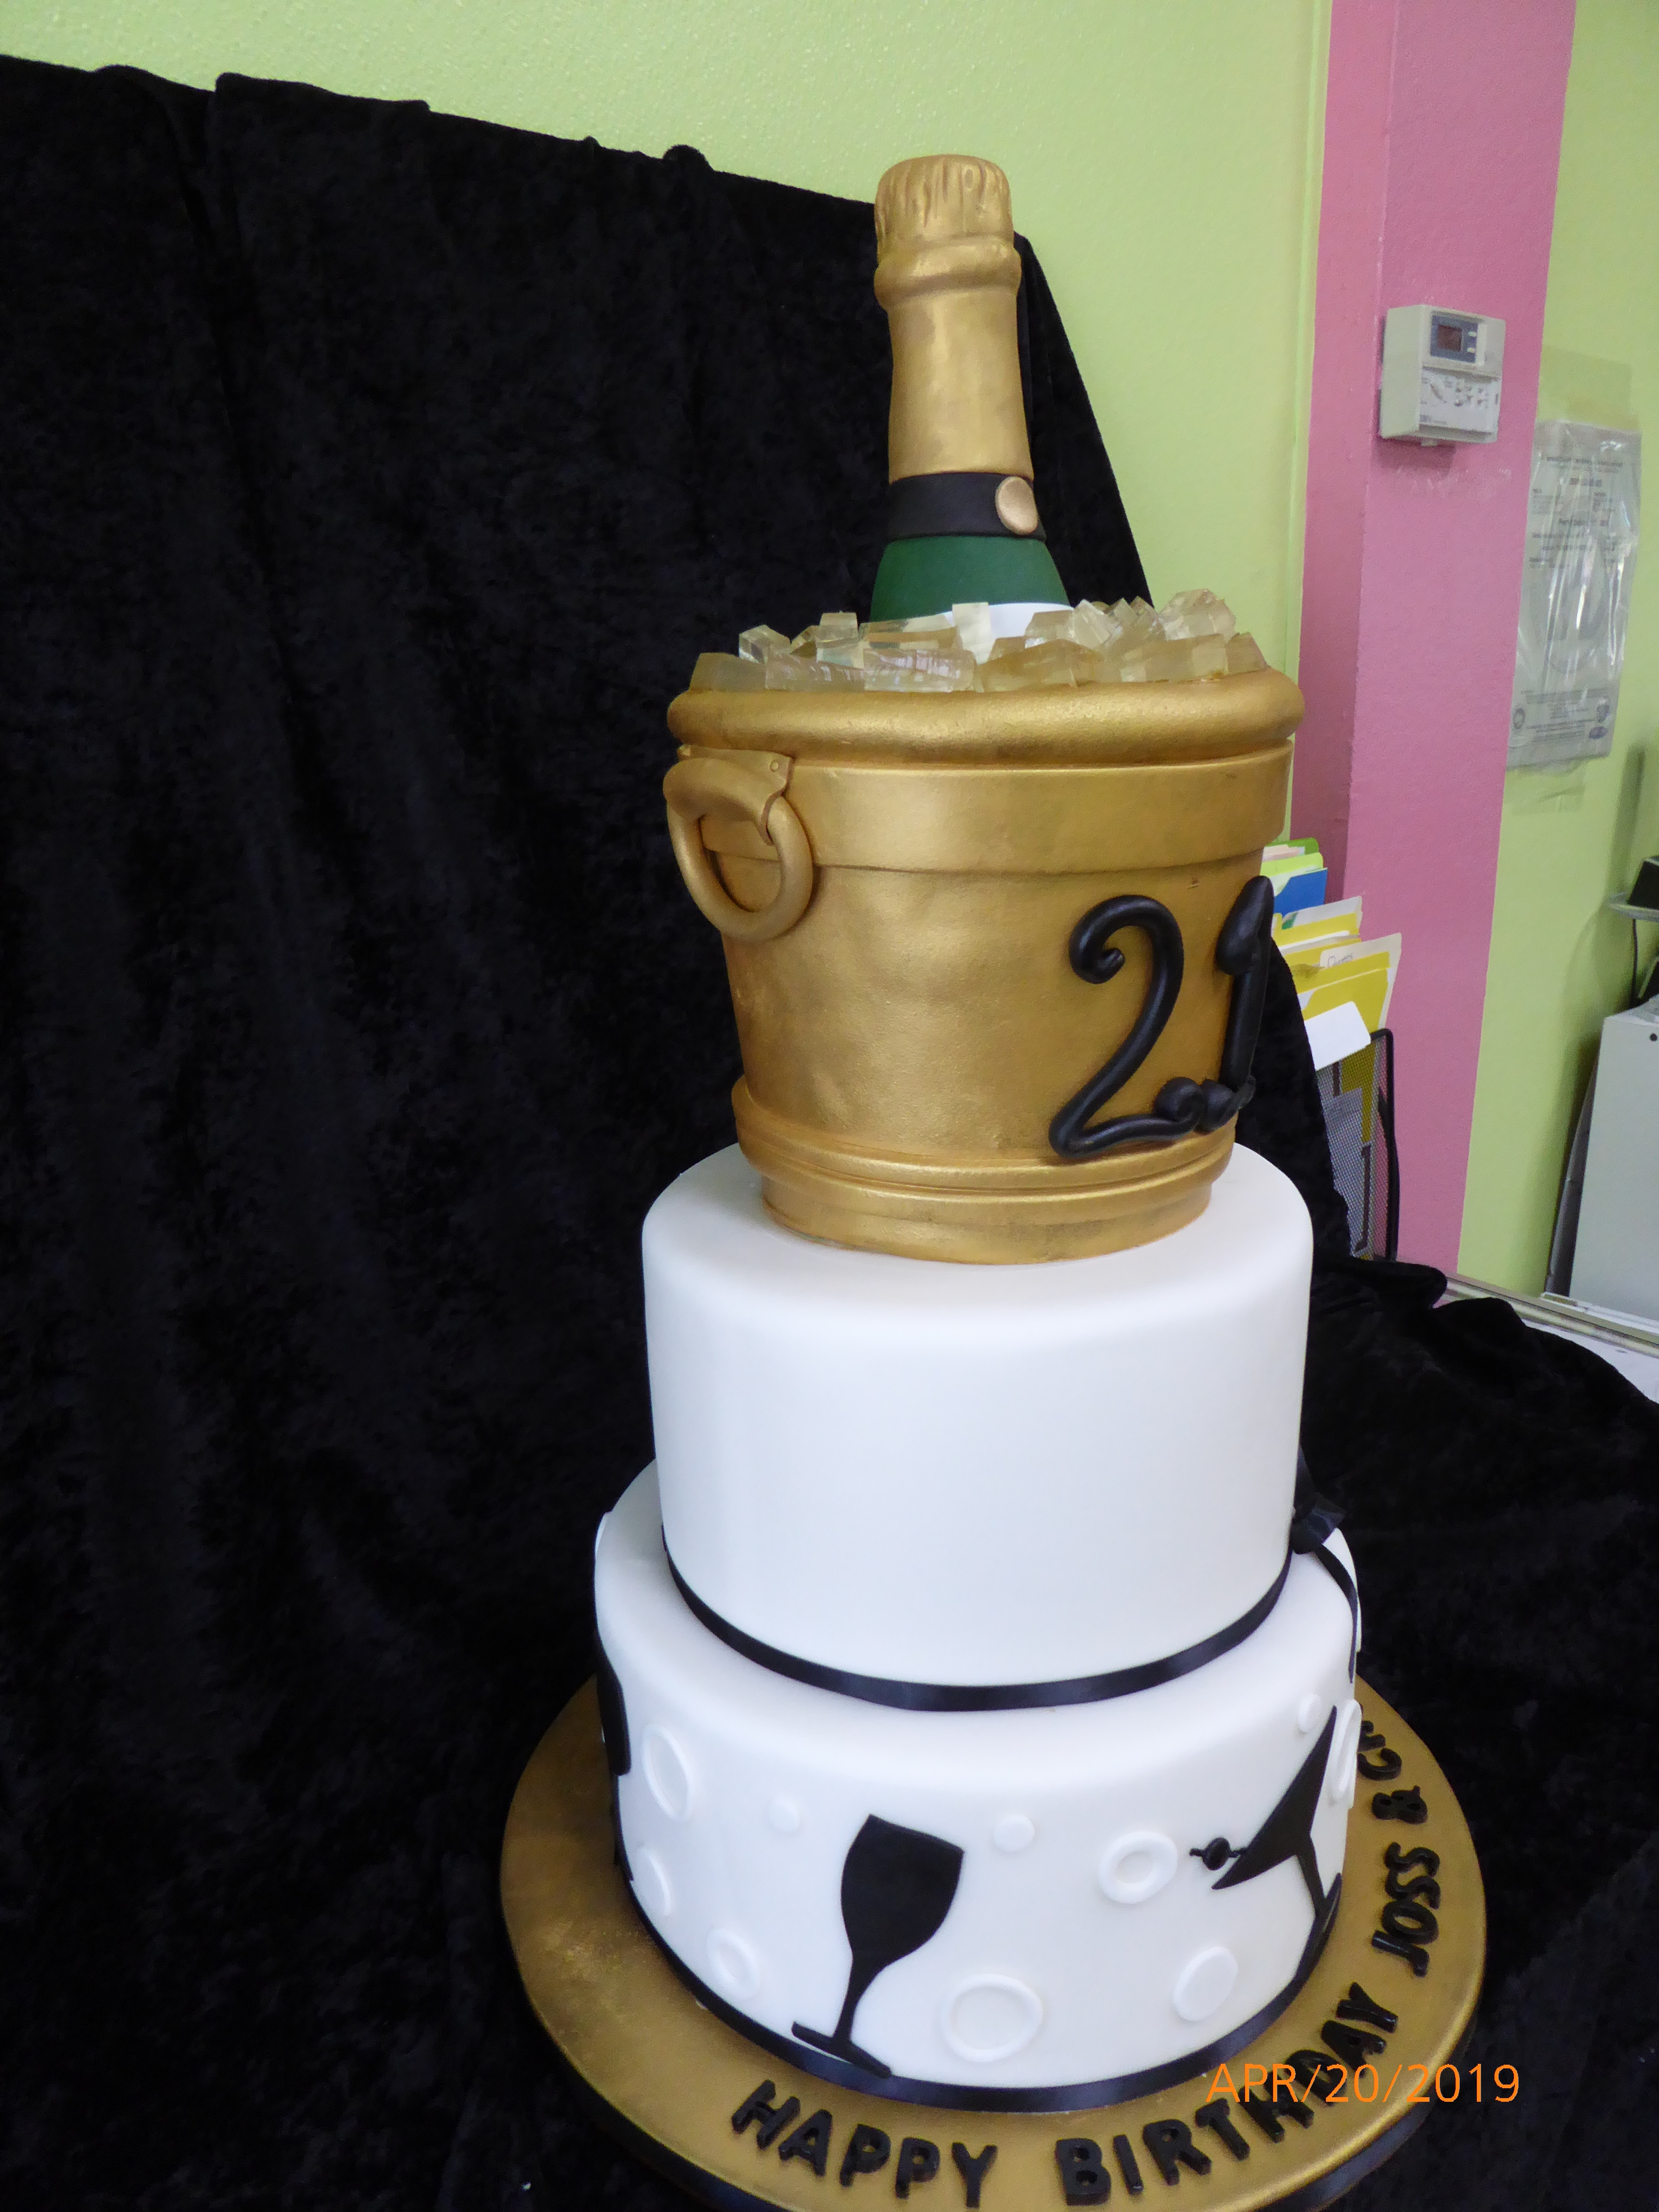 3320, 21st birthday, twenty first birthday, ice bucket, wine, champagne, black, white, gold, martini, tiered